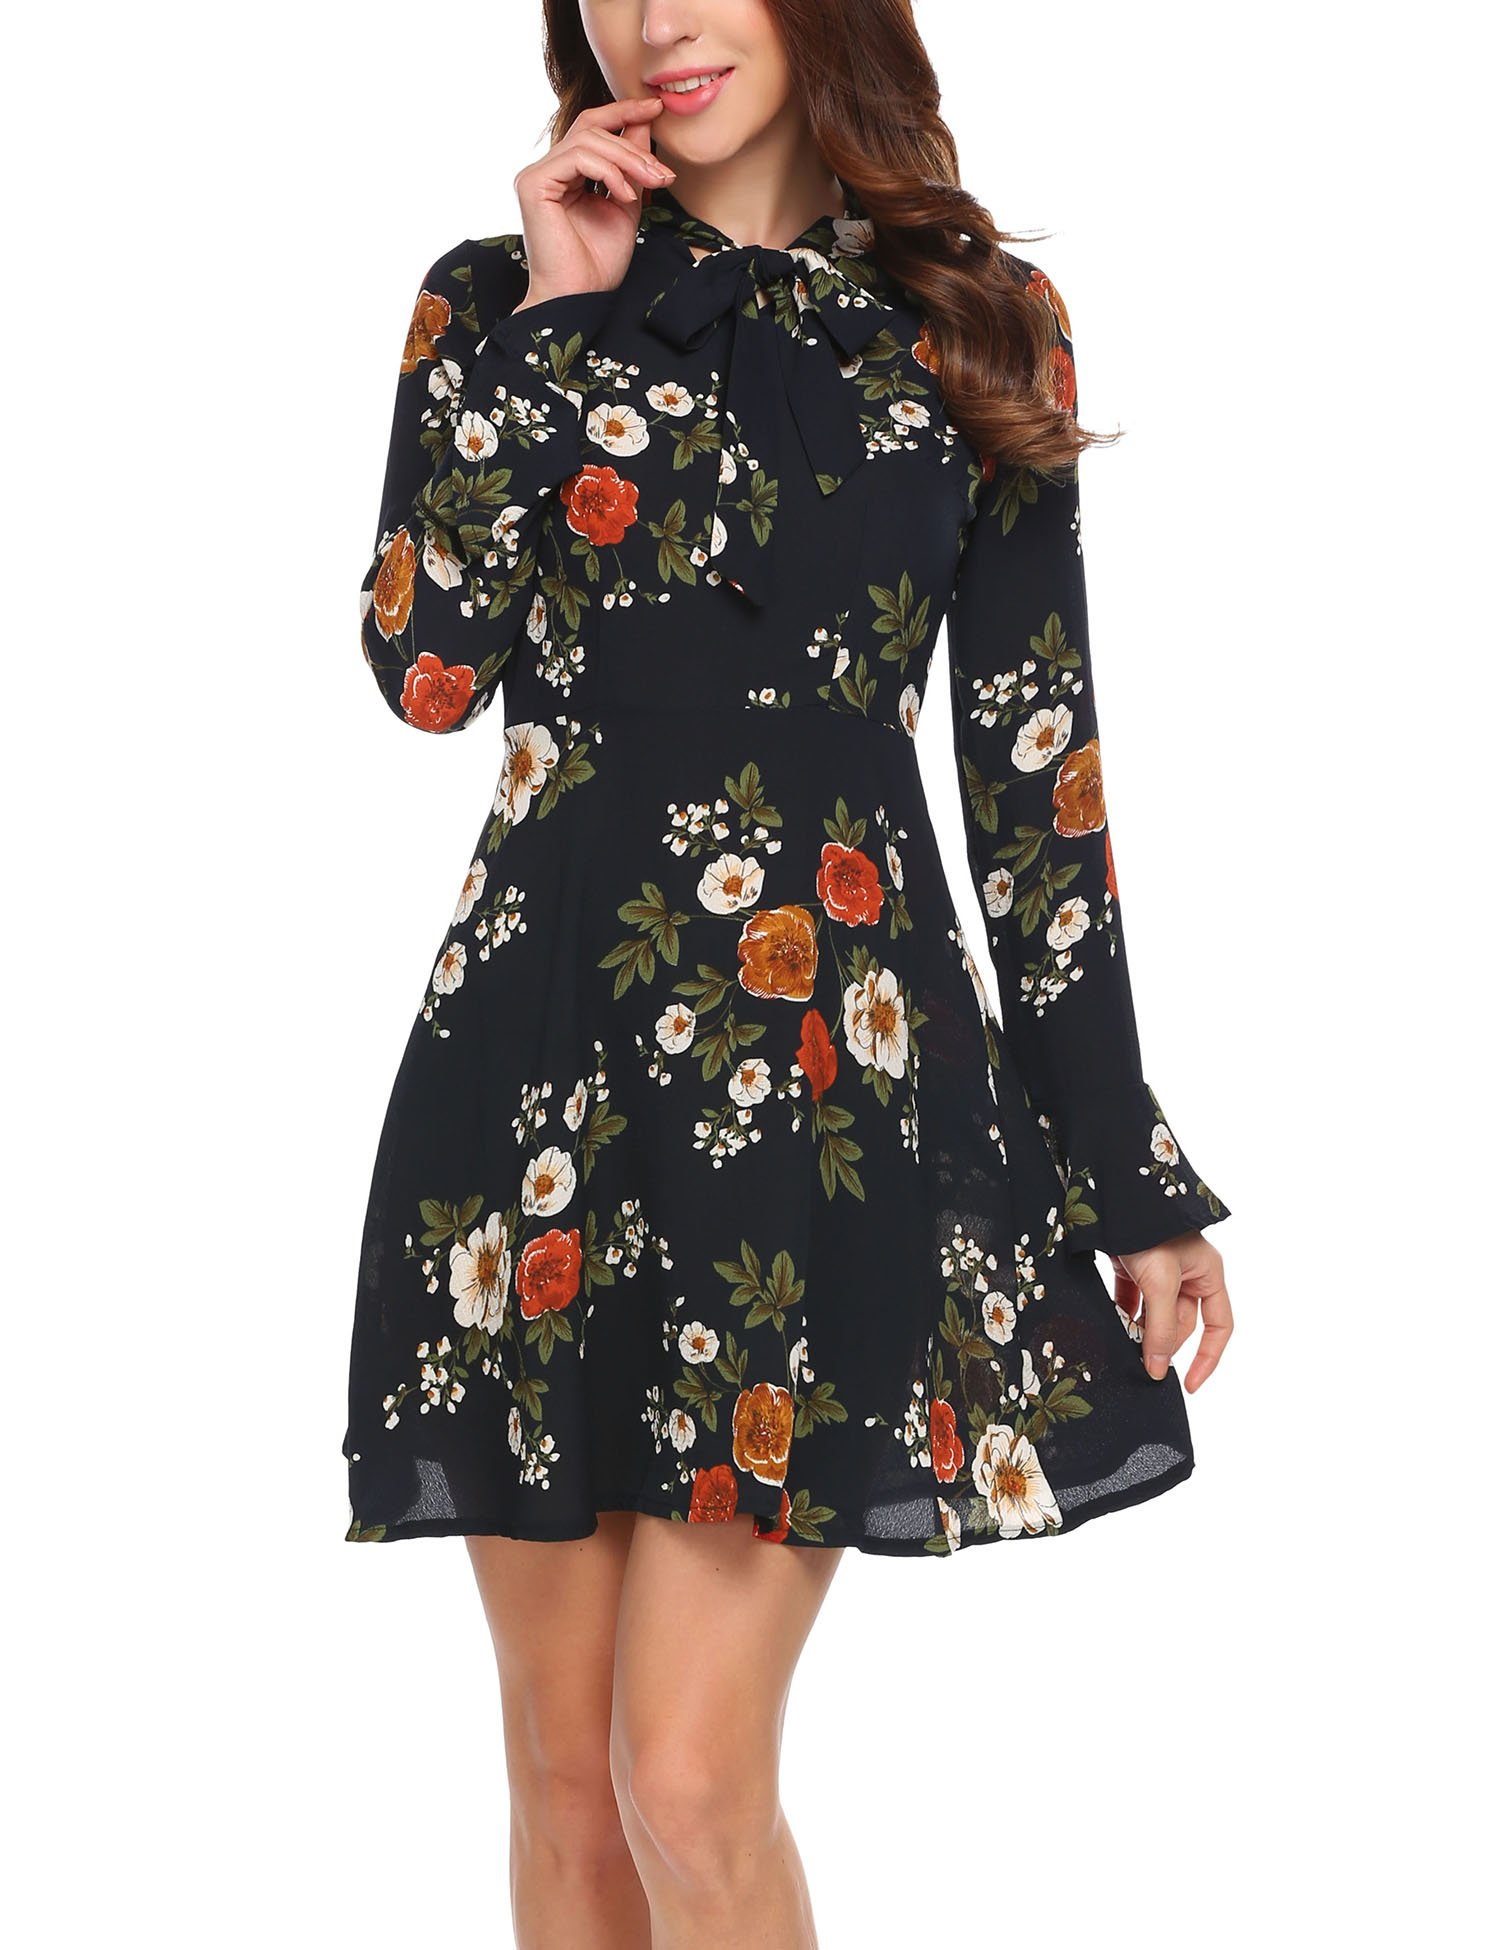 ACEVOG Women's Casual Floral Print Bell Sleeve Fit and Flare Dress,XX-Large,Floral 1 by ACEVOG (Image #2)